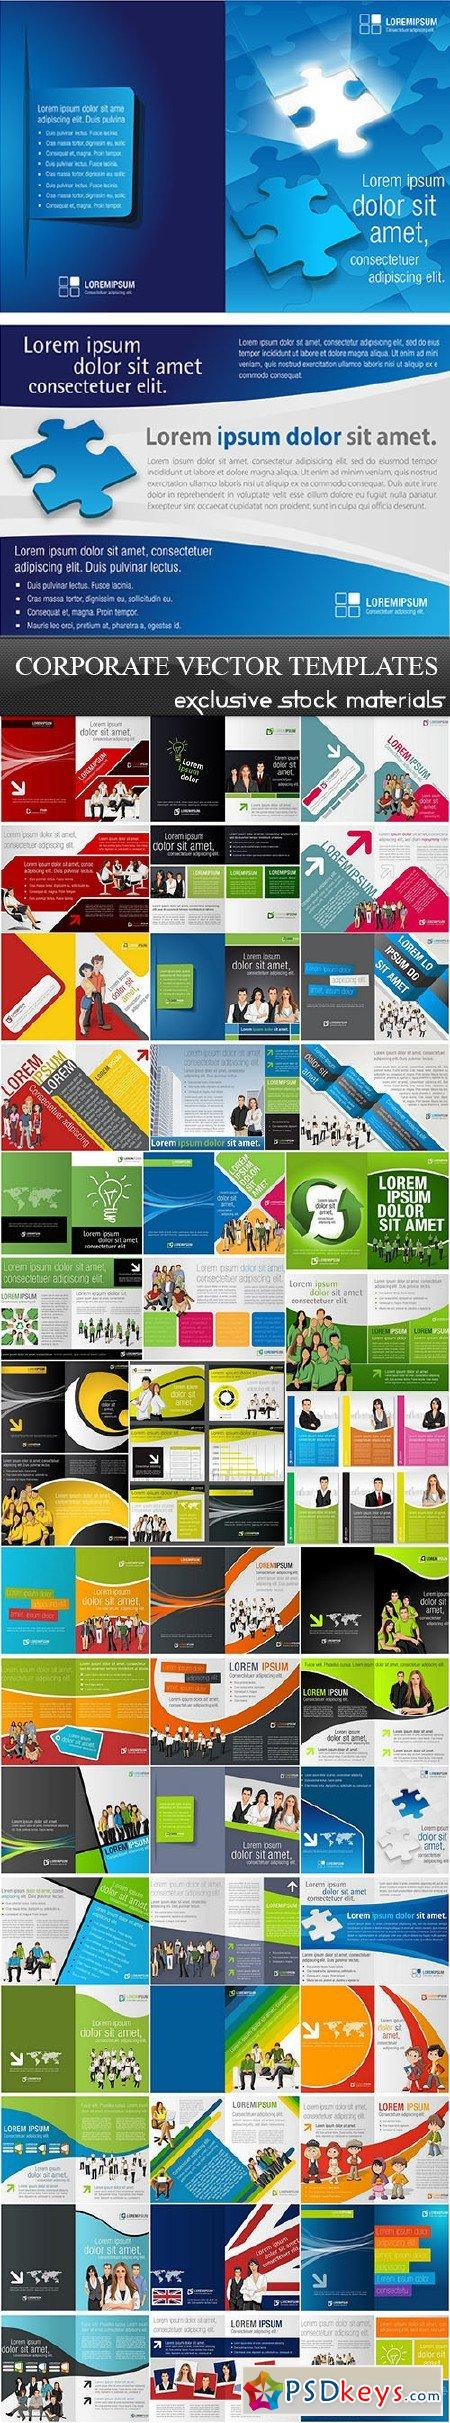 Corporate Vector Templates 25xEPS